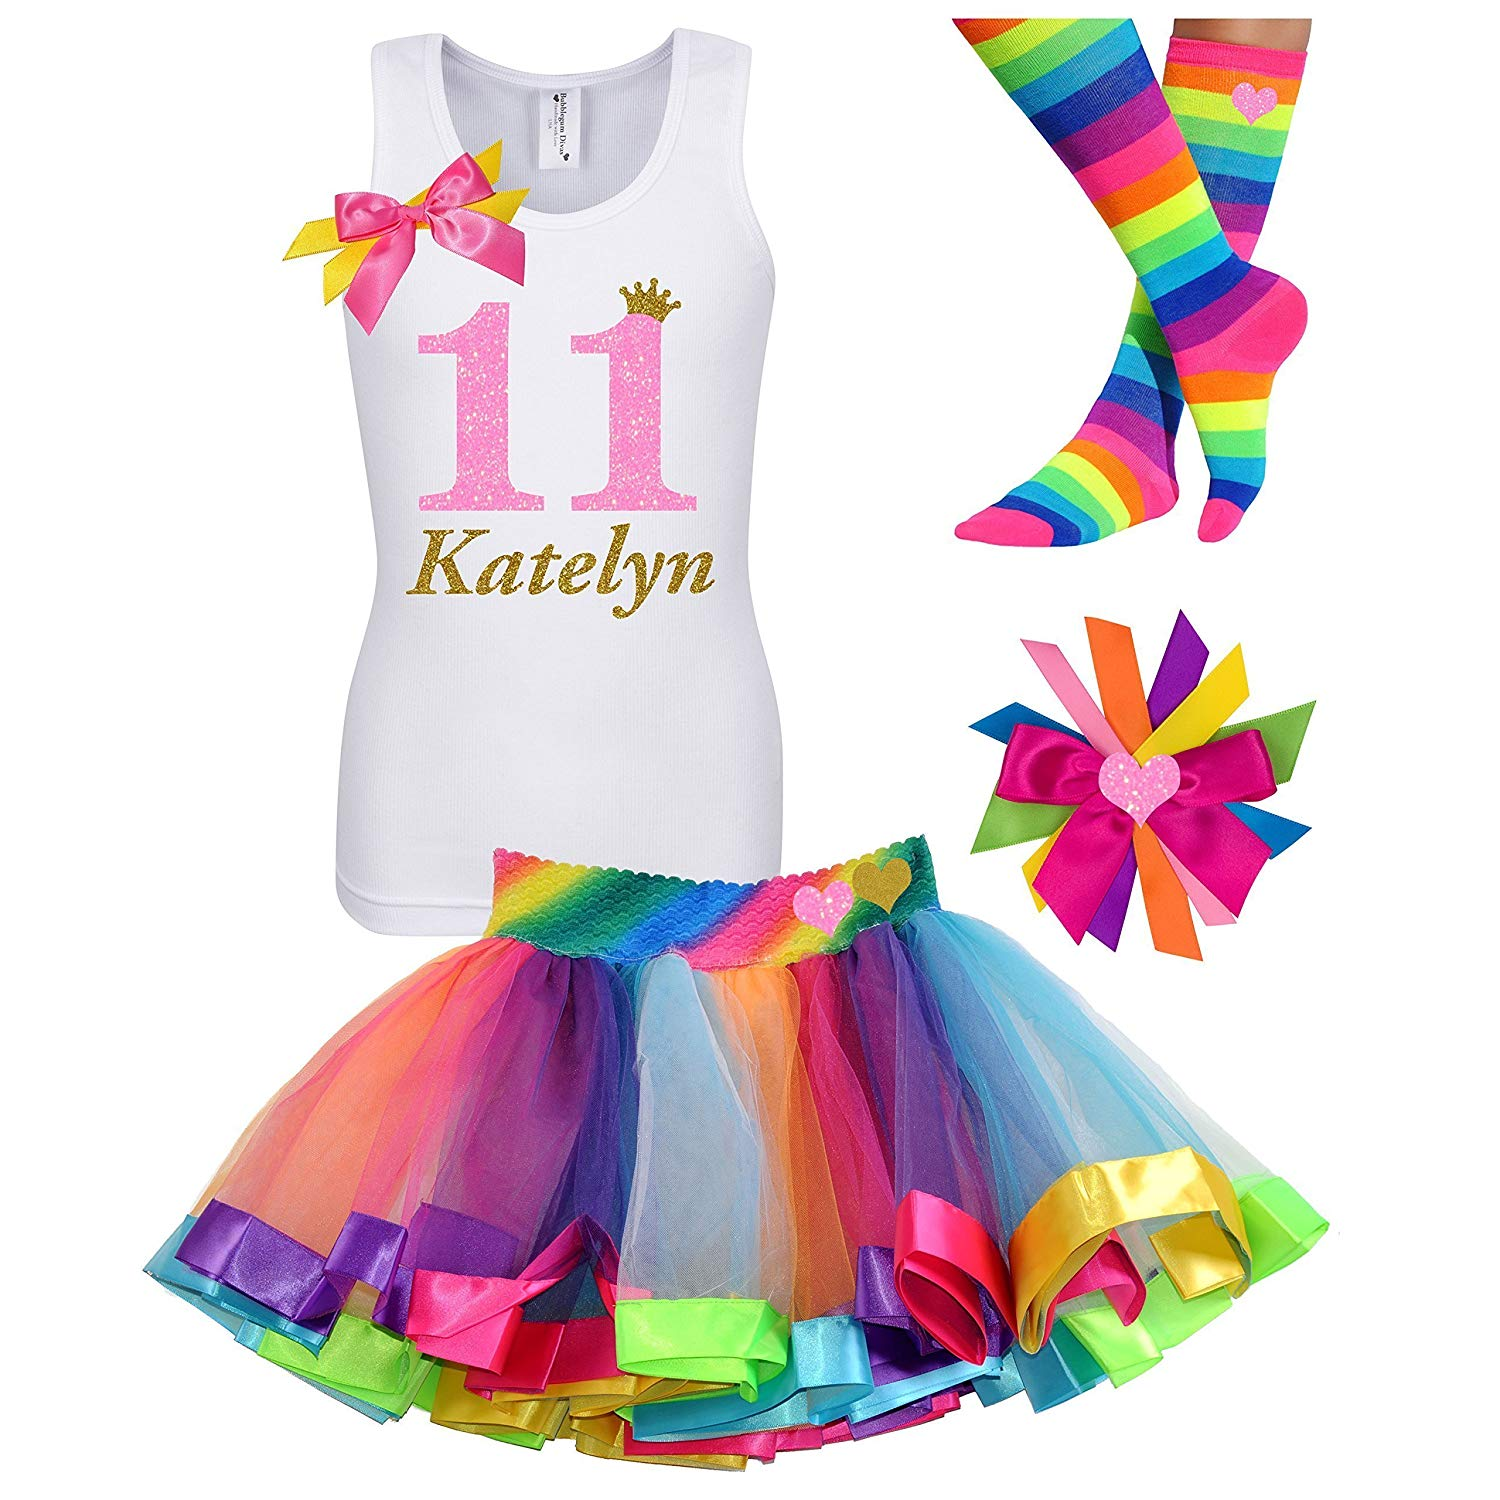 11th Birthday Shirt Glitter Neon Glow Party Rainbow Outfit Tween Girls Gift Personalized Name Age 11